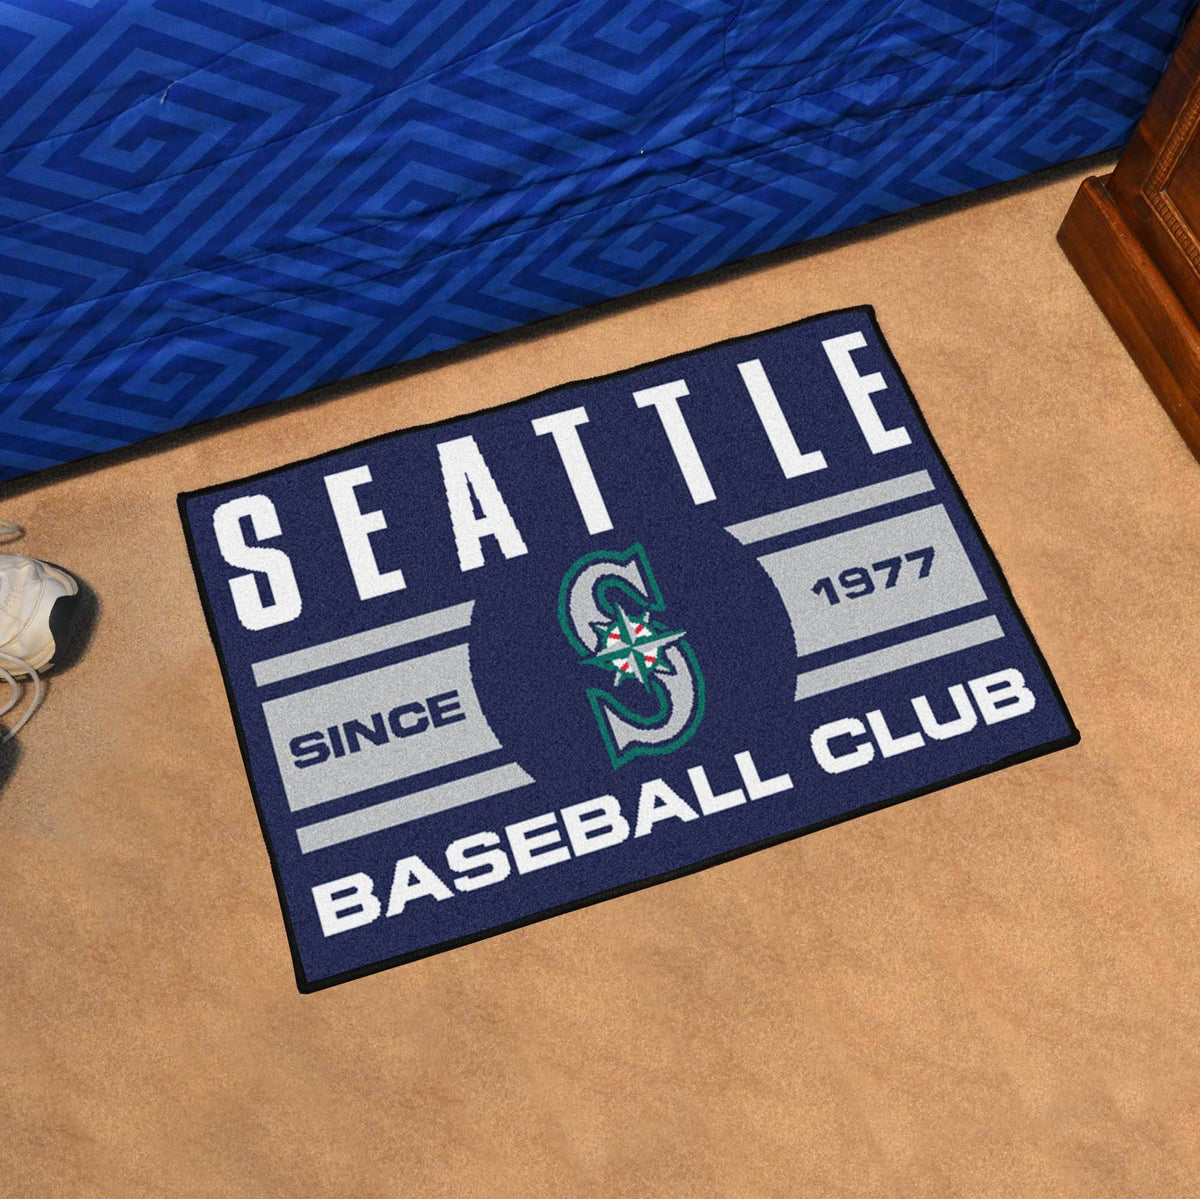 MLB - Uniform Starter Mat MLB Mats, Rectangular Mats, Uniform Starter Mat, MLB, Home Fan Mats Seattle Mariners